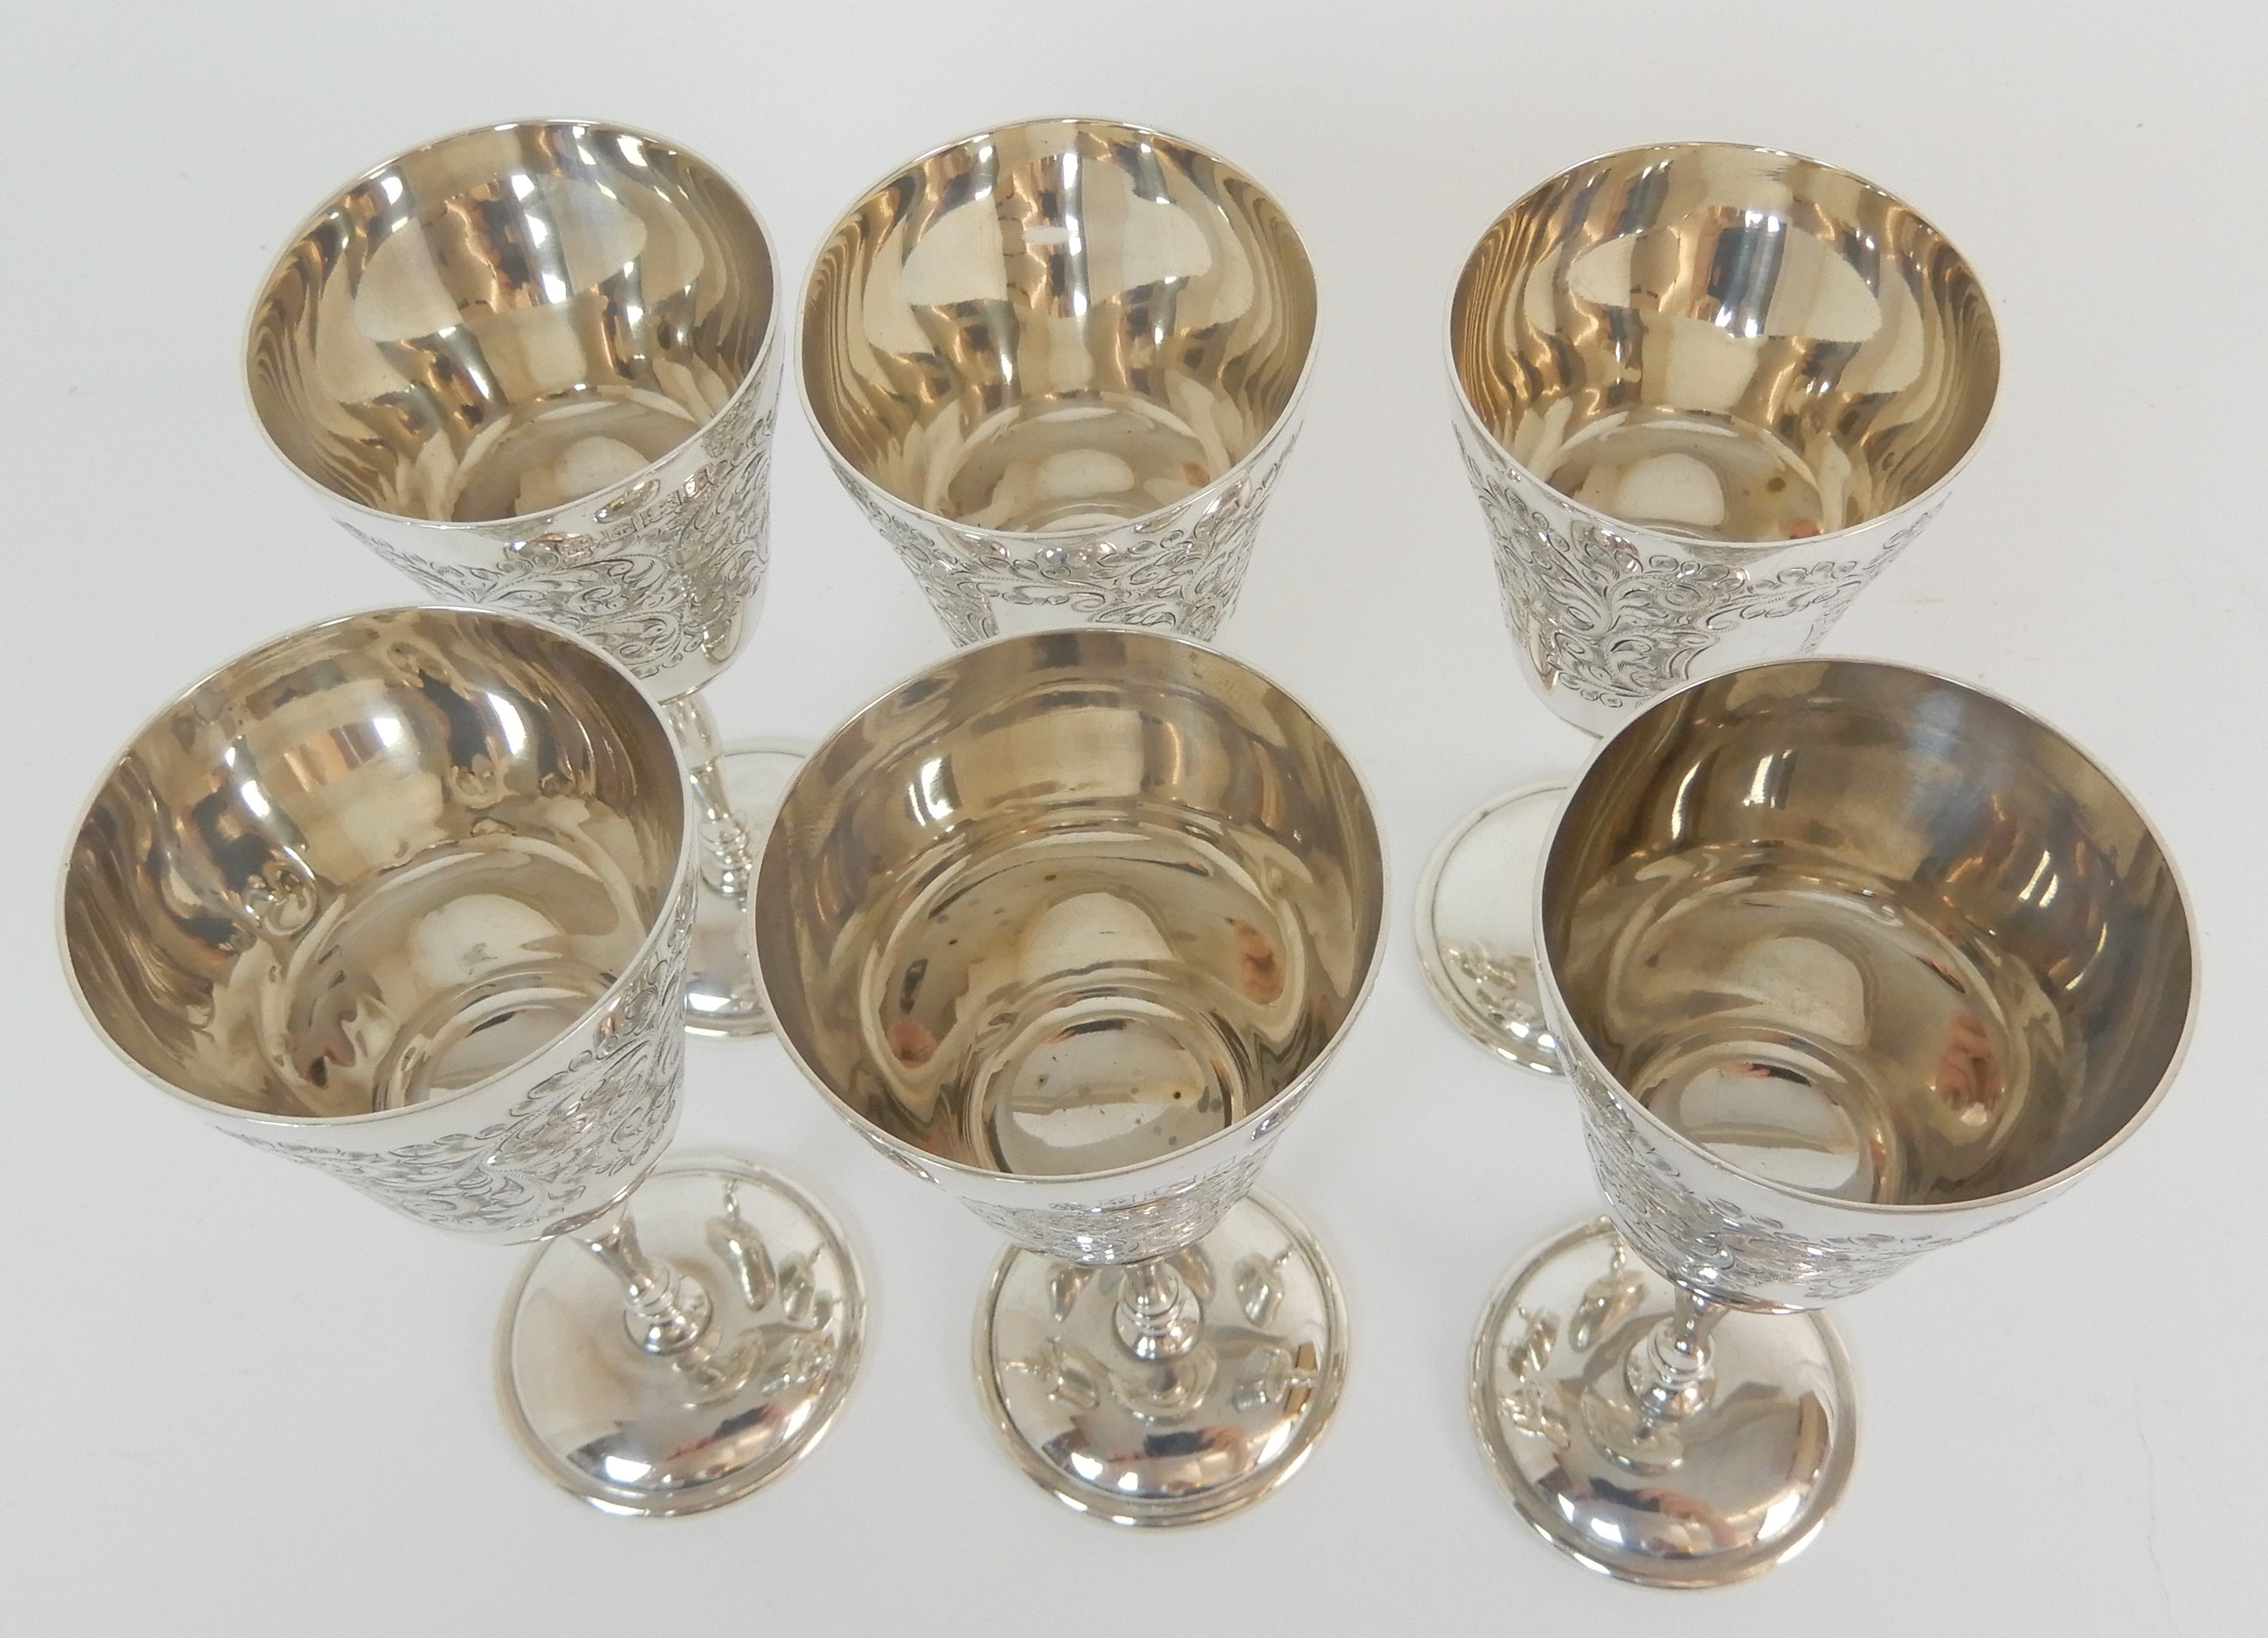 Lot 153 - A SET OF SIX SILVER WINE GOBLETS by Charles S Green & Company Limited, Birmingham 1969, with foliate